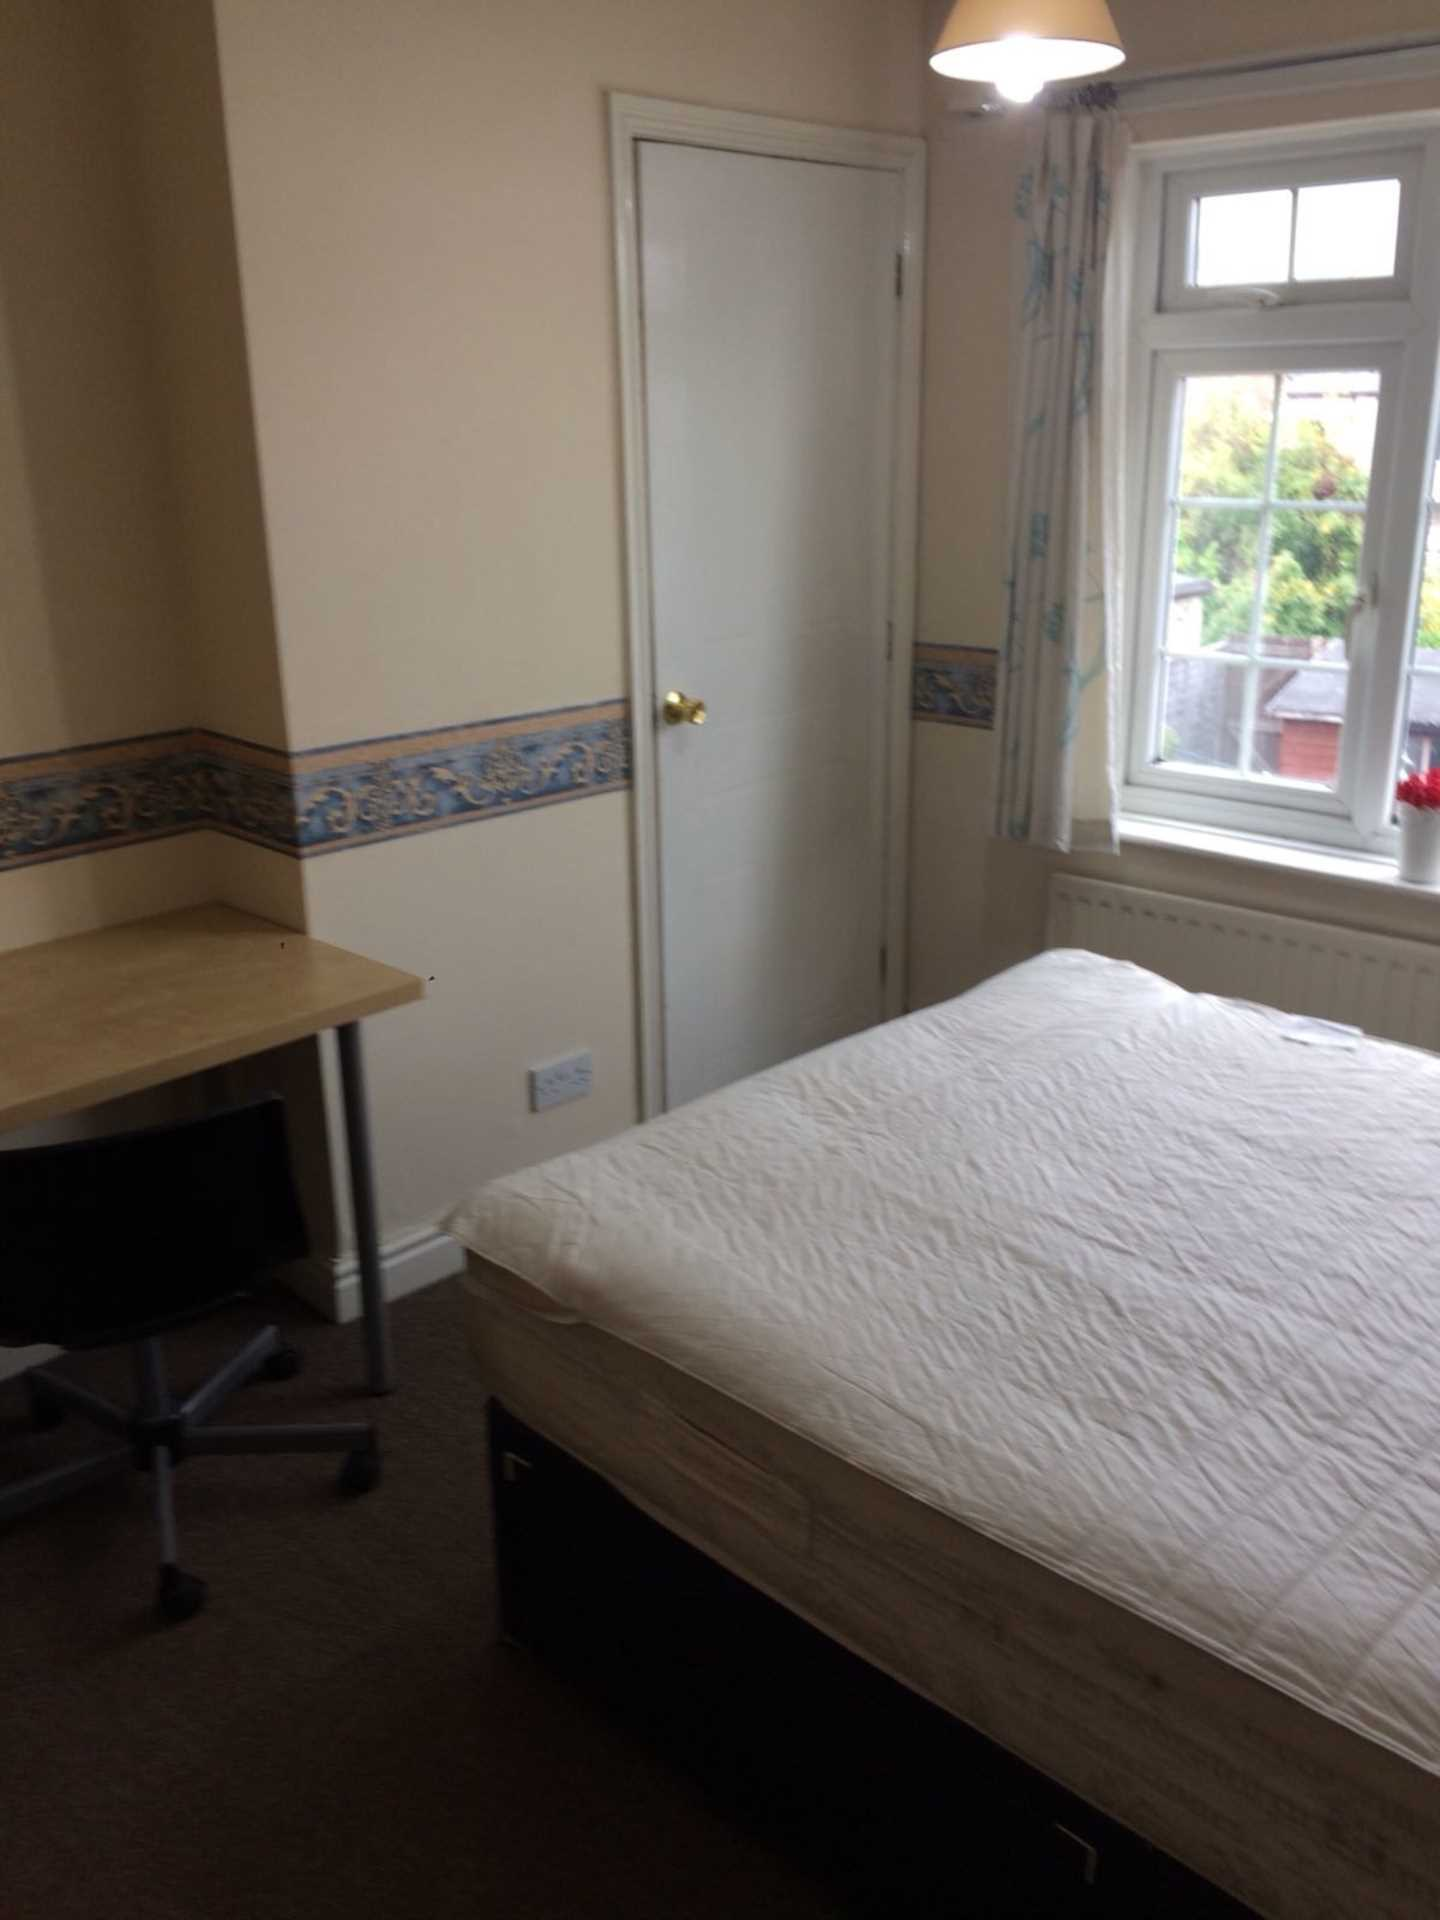 Room 3, Queensland Avenue - 5 bedroom 2 bathroom student home fully furnished, WIFI & bills included - NO FEES, Image 8